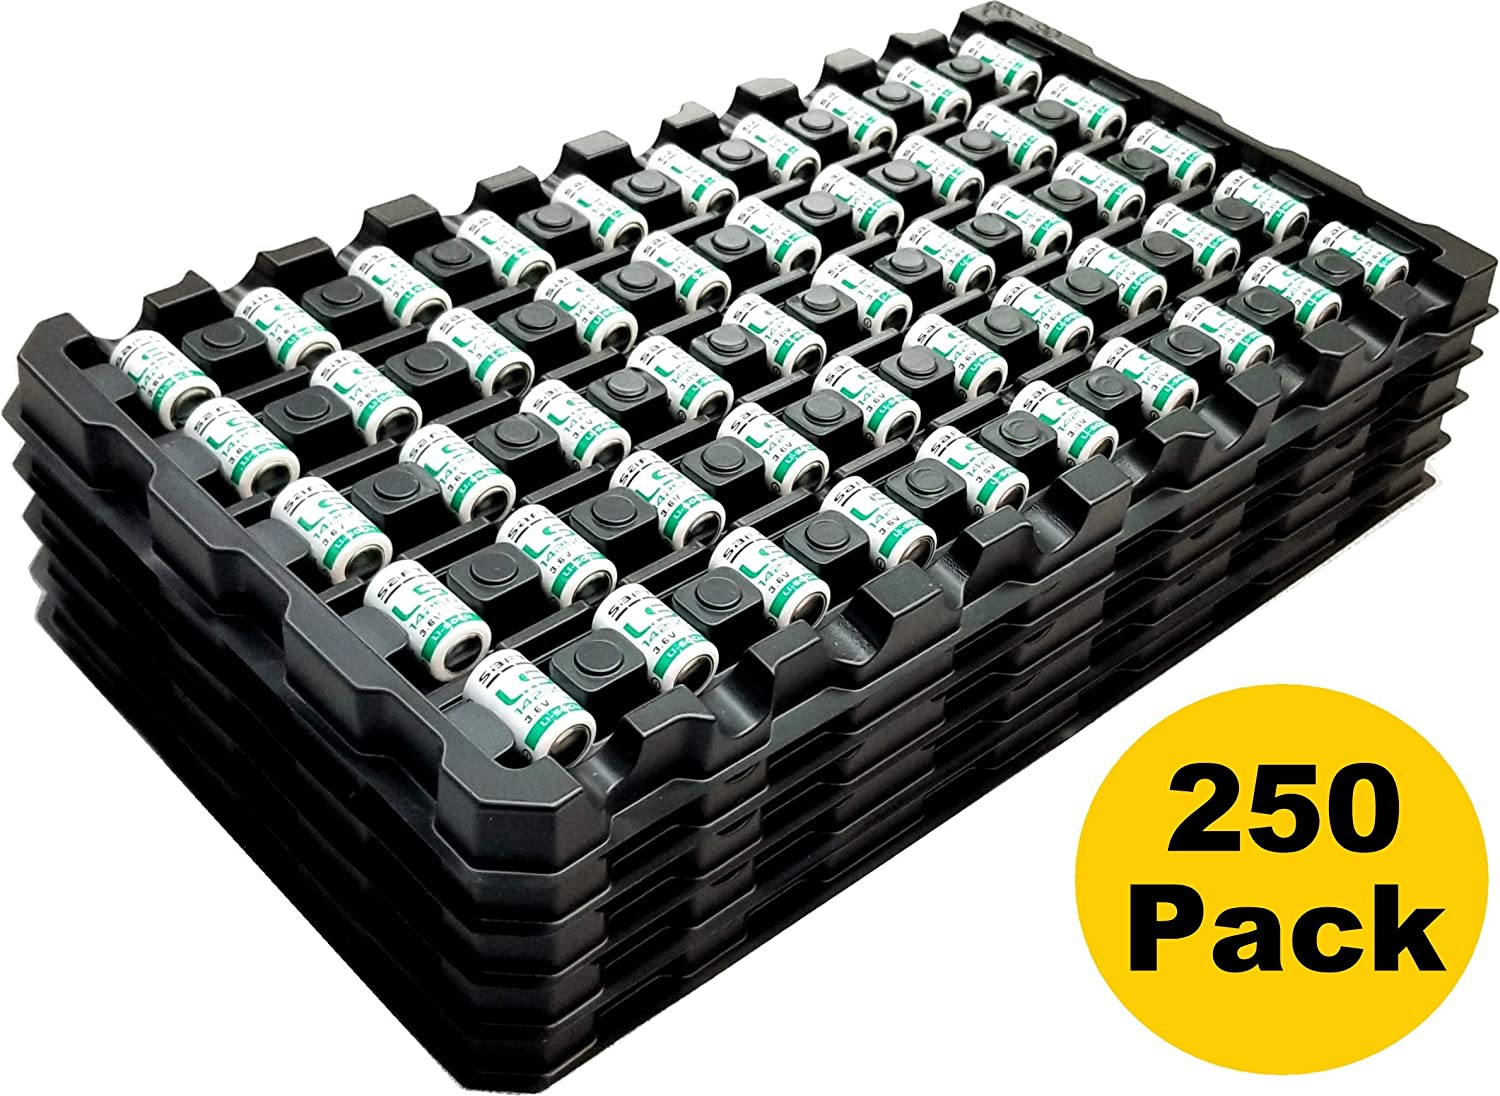 Saft LS-14250 1 2 AA Non 3.6V Lithium Sales of Ranking TOP1 SALE items from new works Rechargeable 250